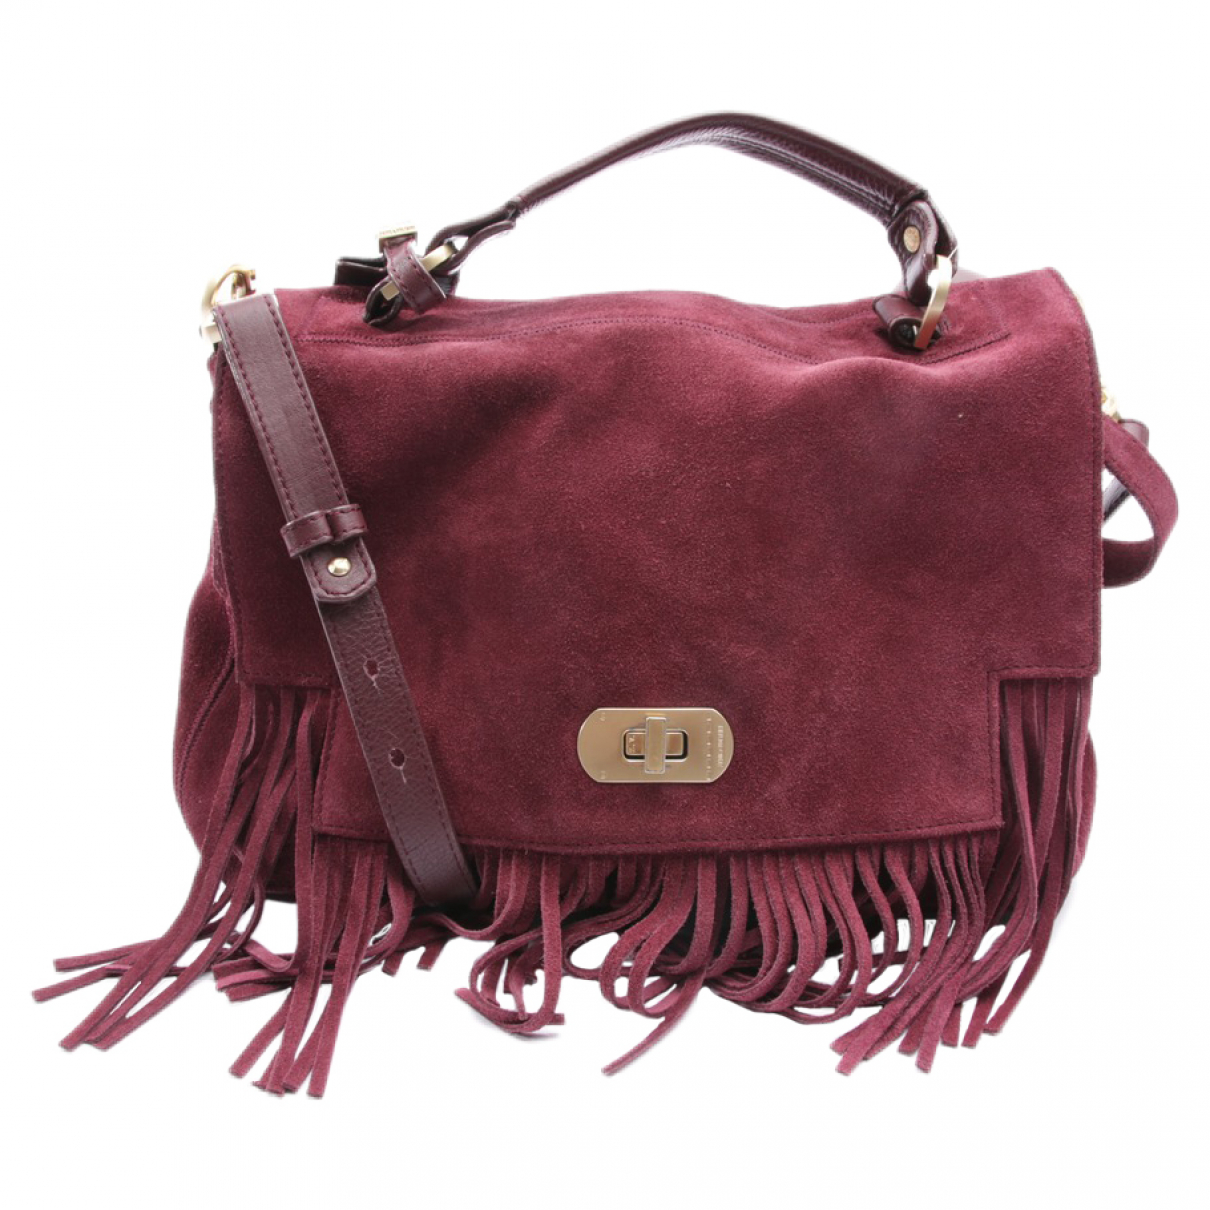 Zadig & Voltaire \N Red Leather handbag for Women \N